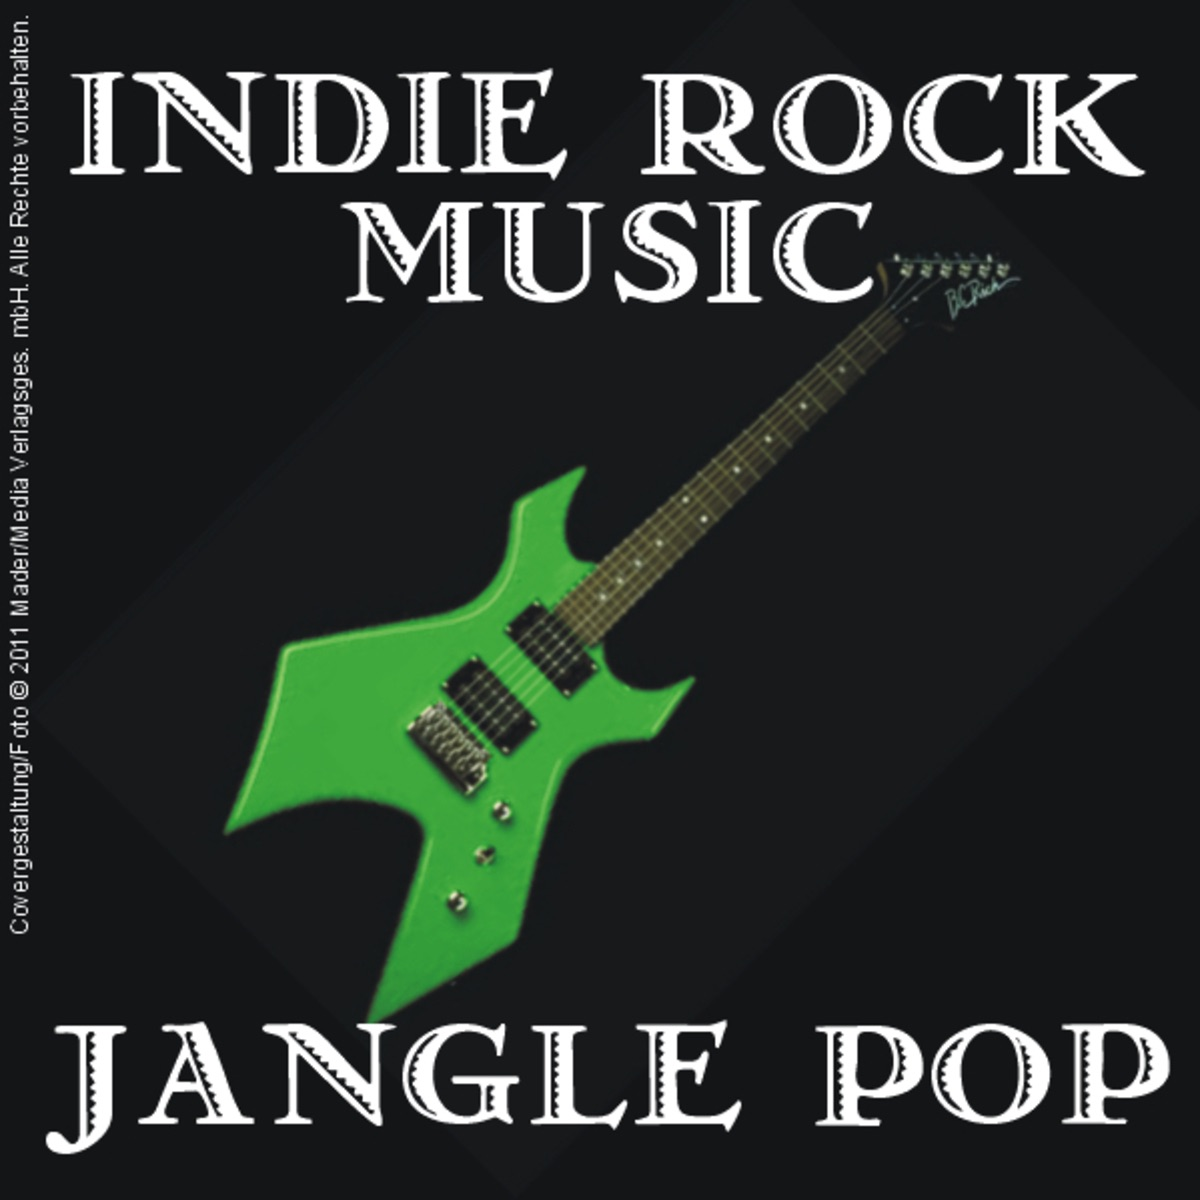 Rock Music Cover Indie Rock Music Jangle Pop Album Cover By Various Artists